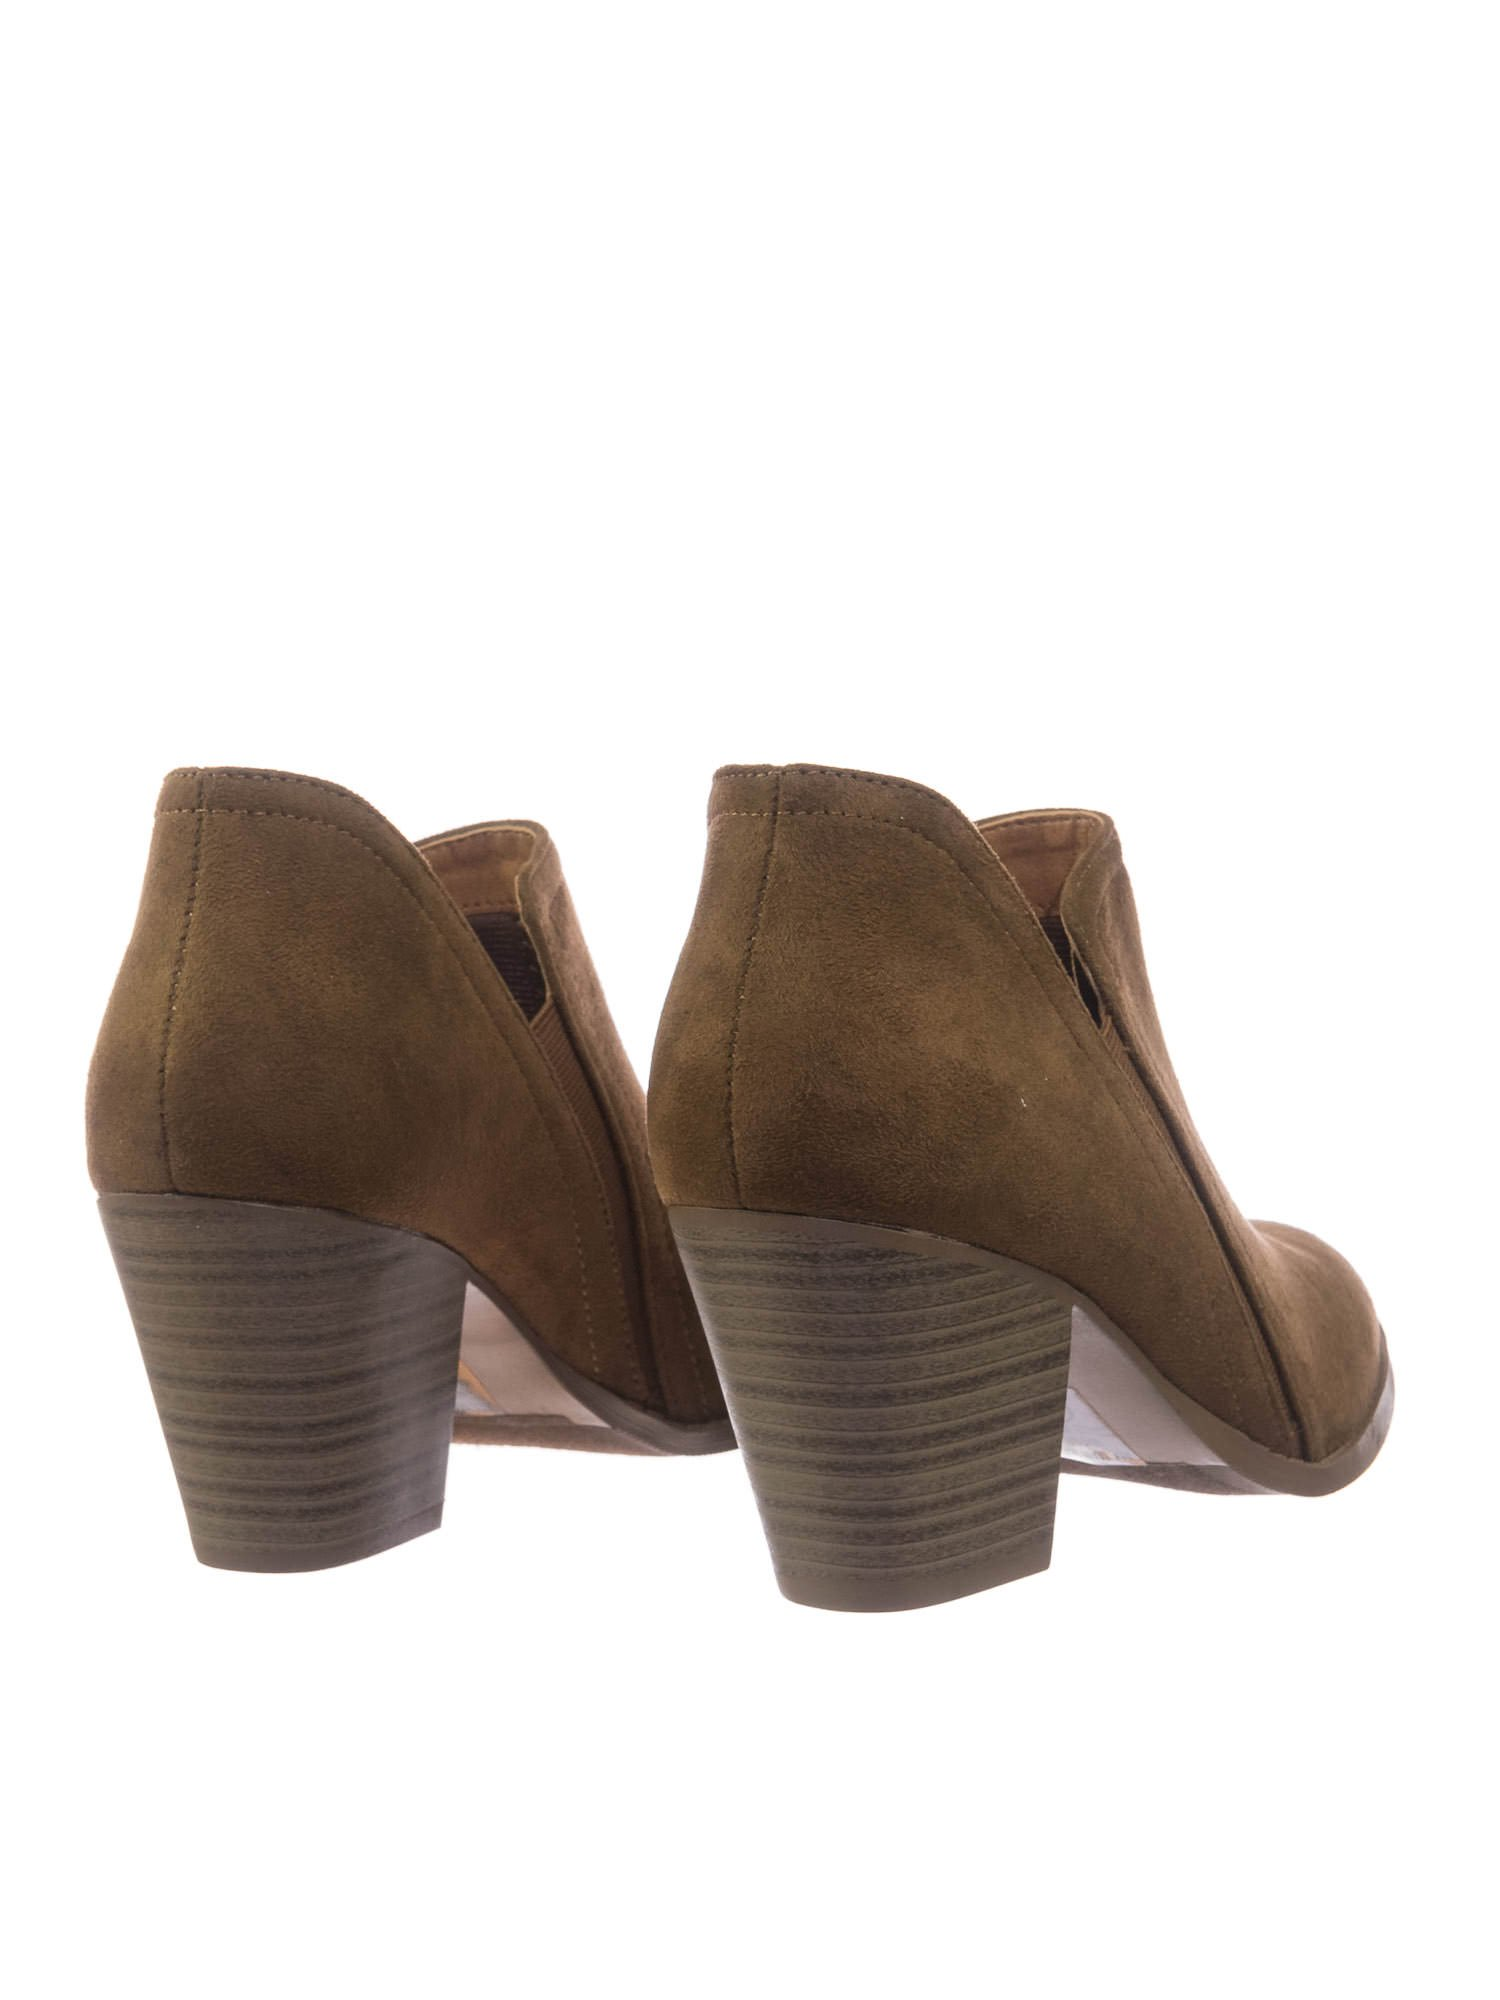 City Classified Women Chelsea High Stack Heel Ankle Bootie w Elastic Side Slit by City Classified (Image #4)